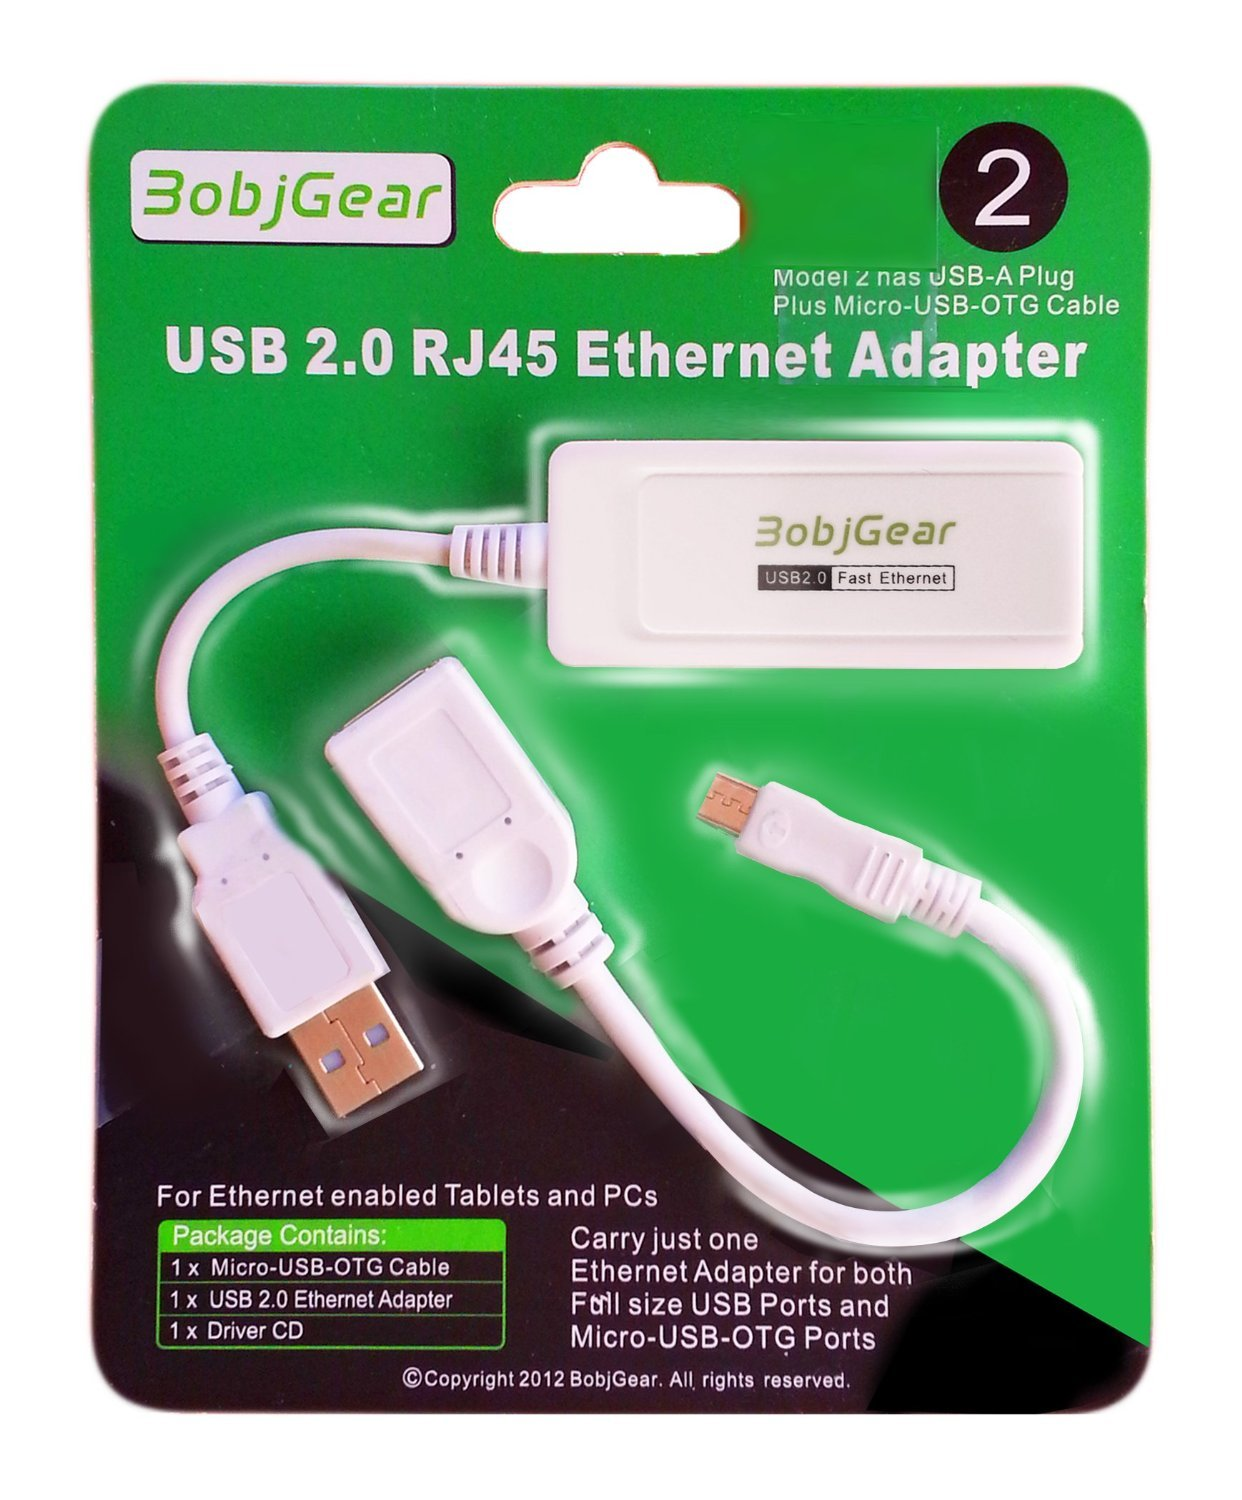 Bobjgear Usb To Rj45 Ethernet Adapter And Matching Micro Otg 0 Cable For Android Tablets Chromebooks Ultrabooks Windows Linux Mac Chrome Os